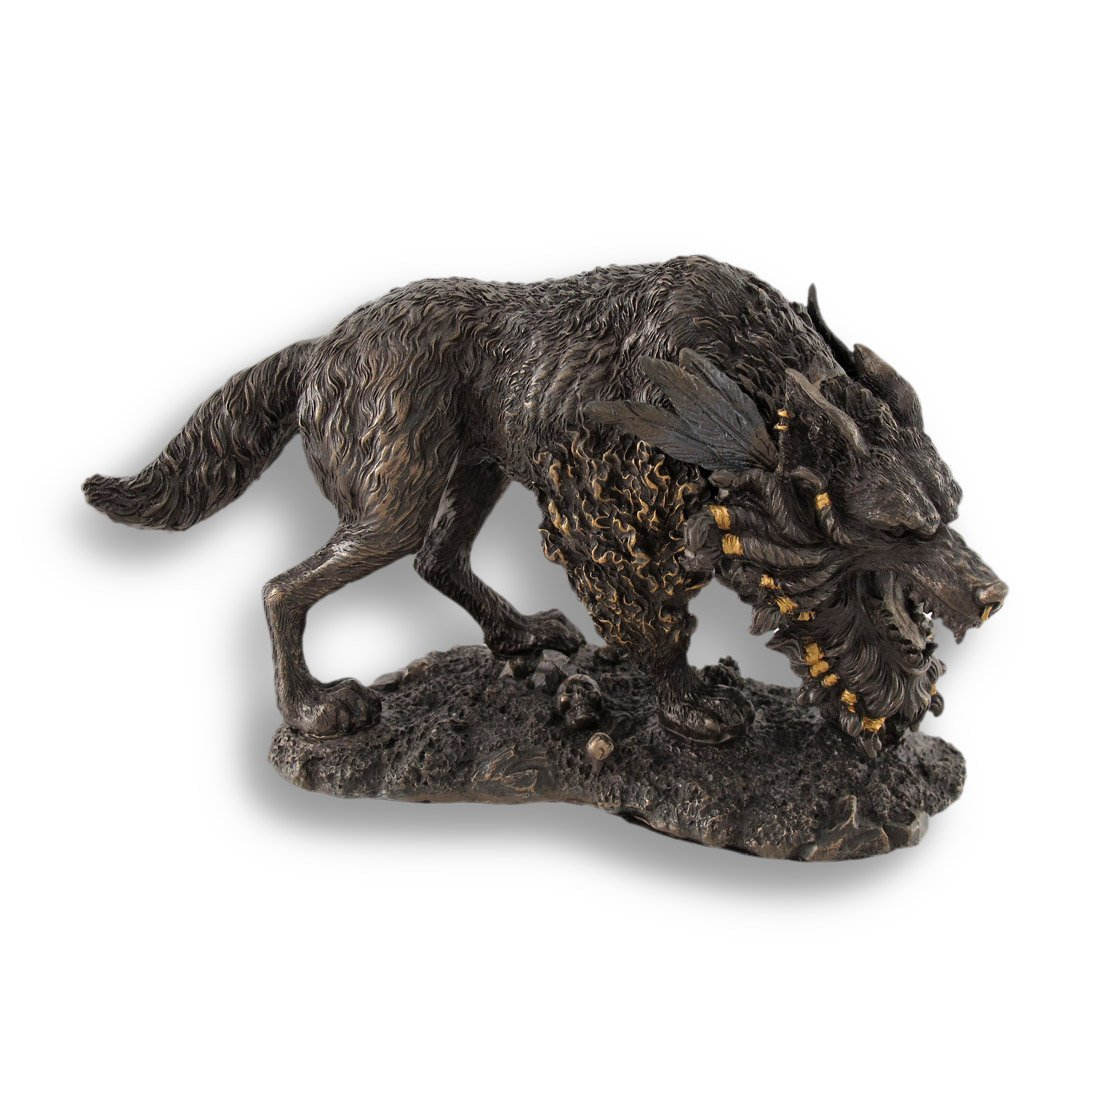 Norse Mythology Gigantic Wolf Fenrir Bronze Figurine